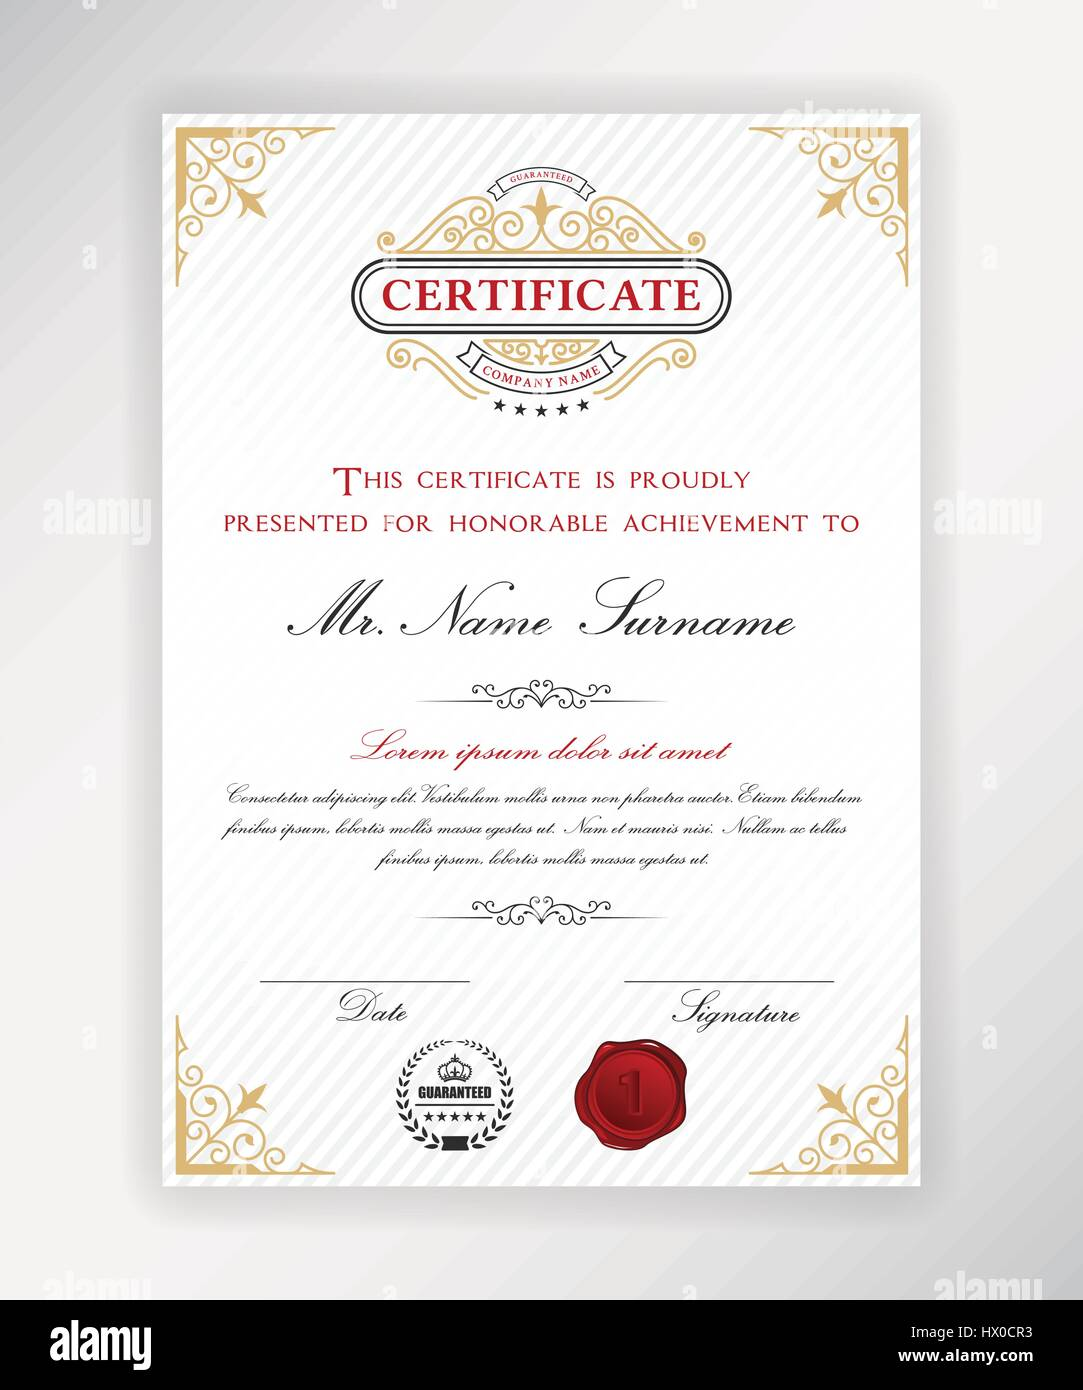 Certificate Template Design With Emblem Flourish Border On White